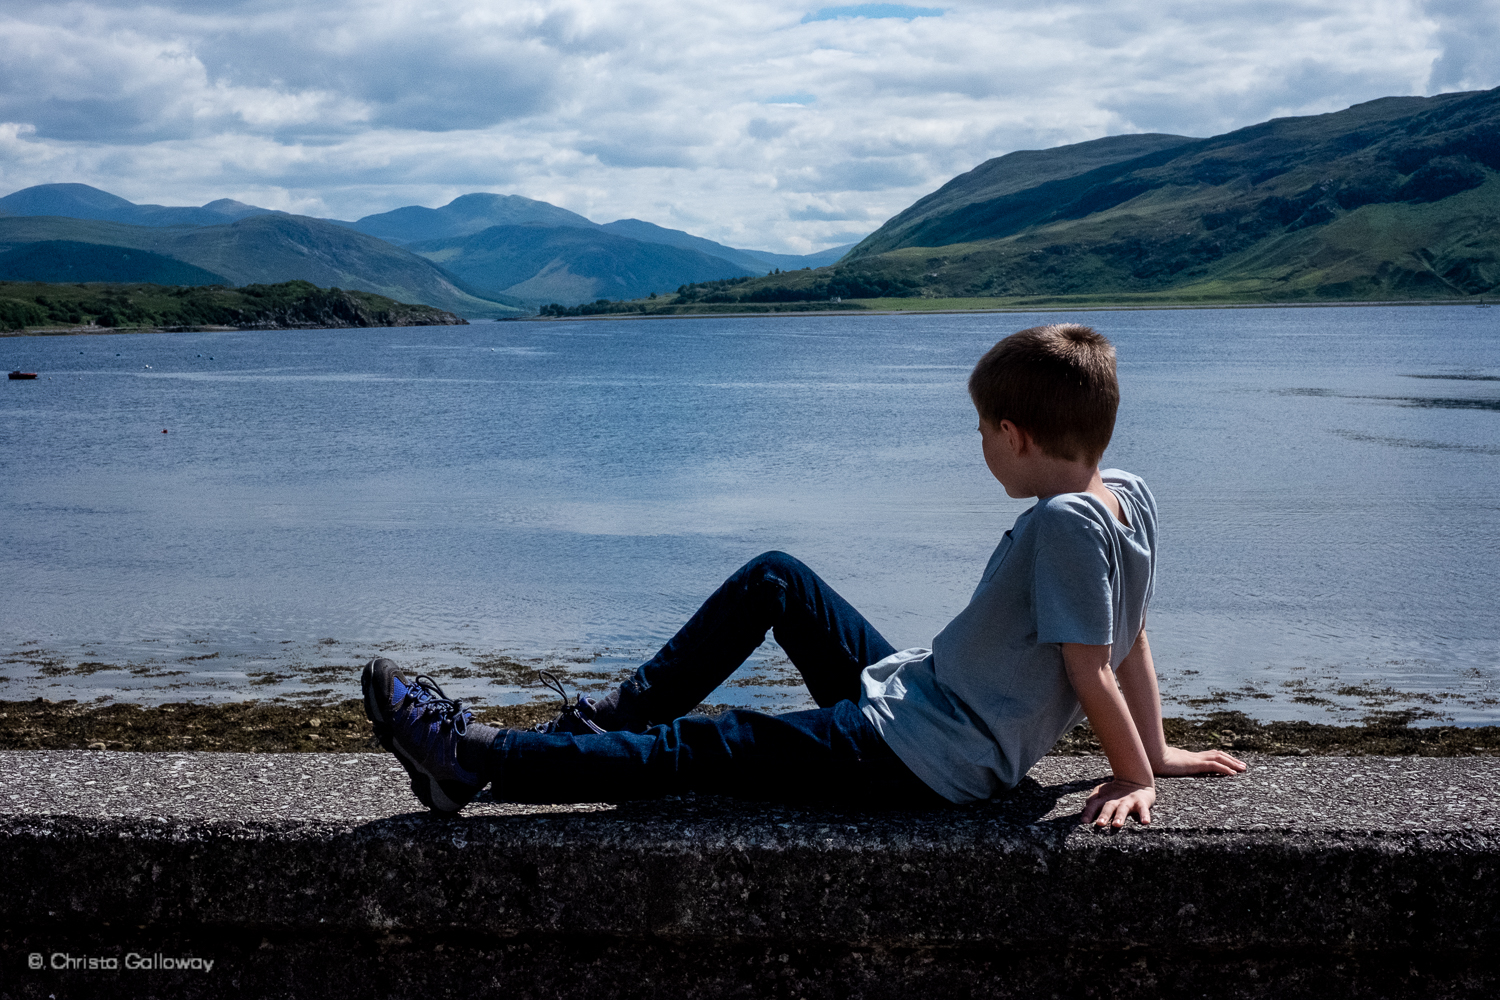 Oscar Galloway looking out over Loch Broom in Ullapool. Photo copyright Christa Galloway.